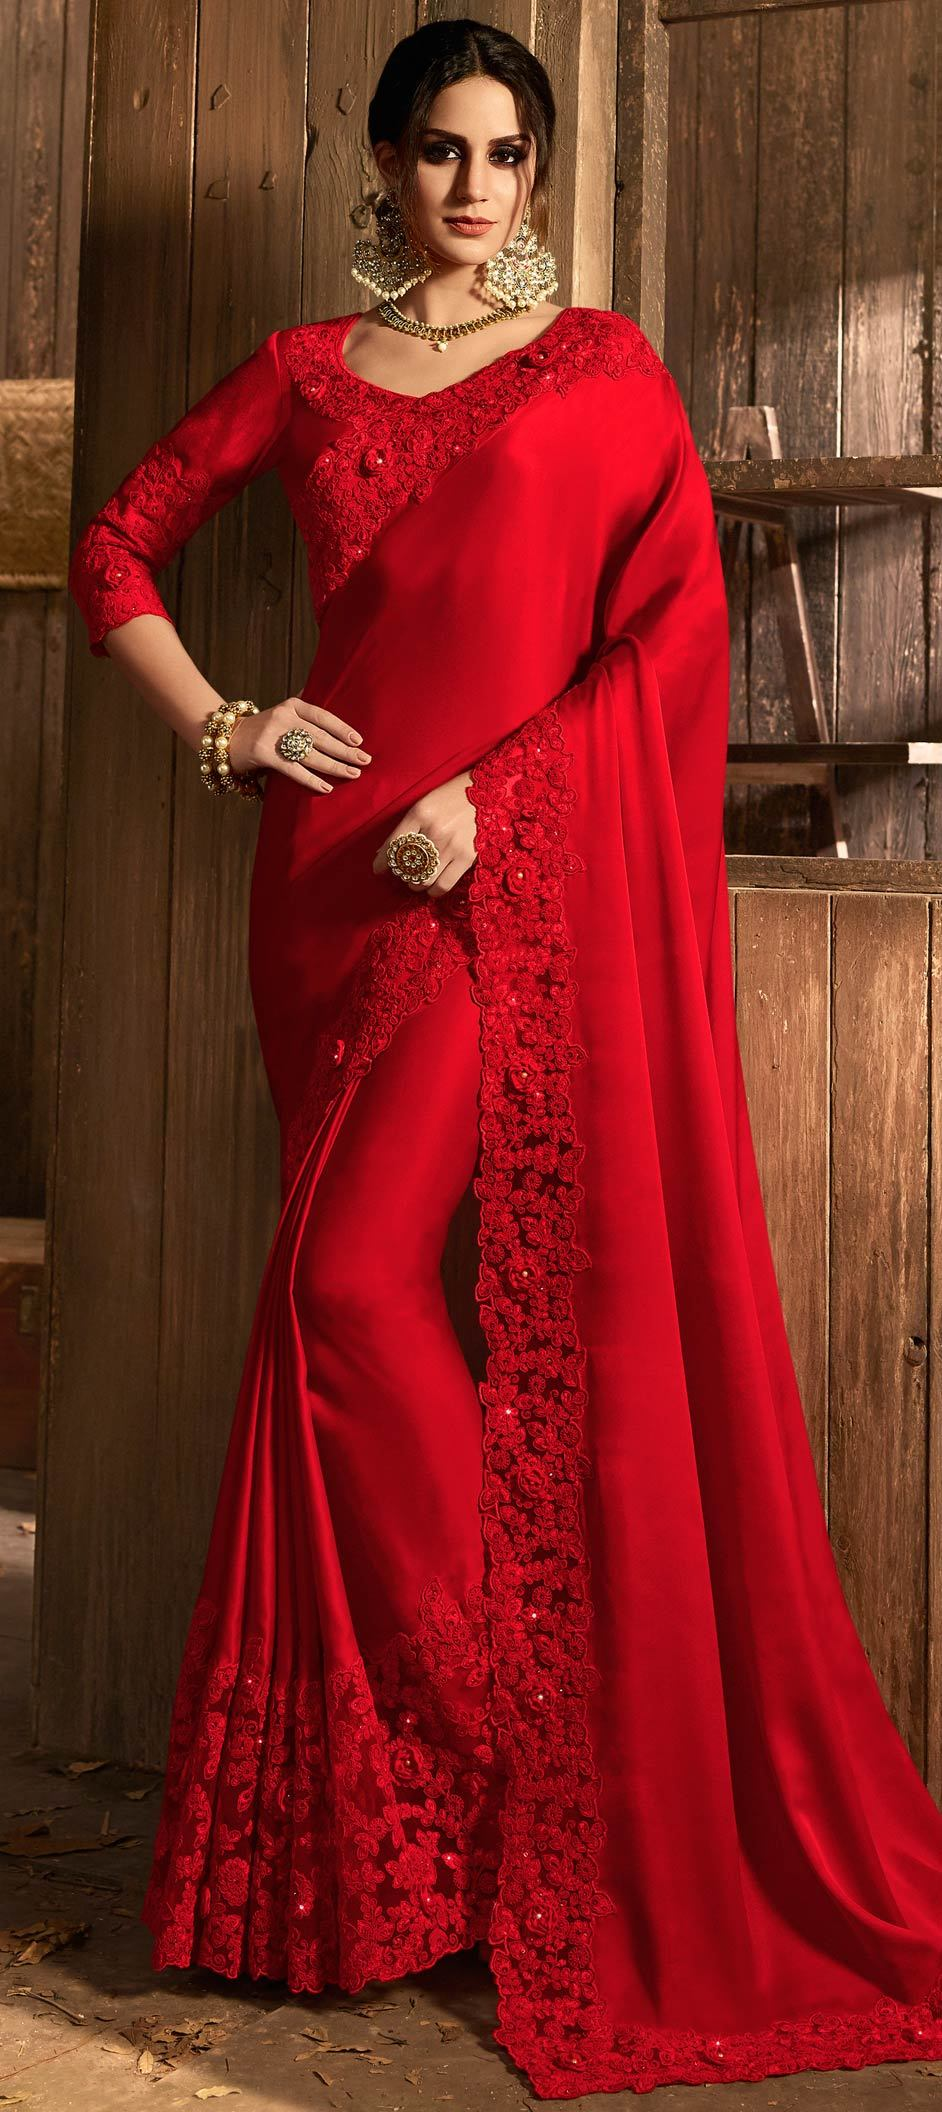 Net Bollywood Saree in Red and Maroon with Moti work